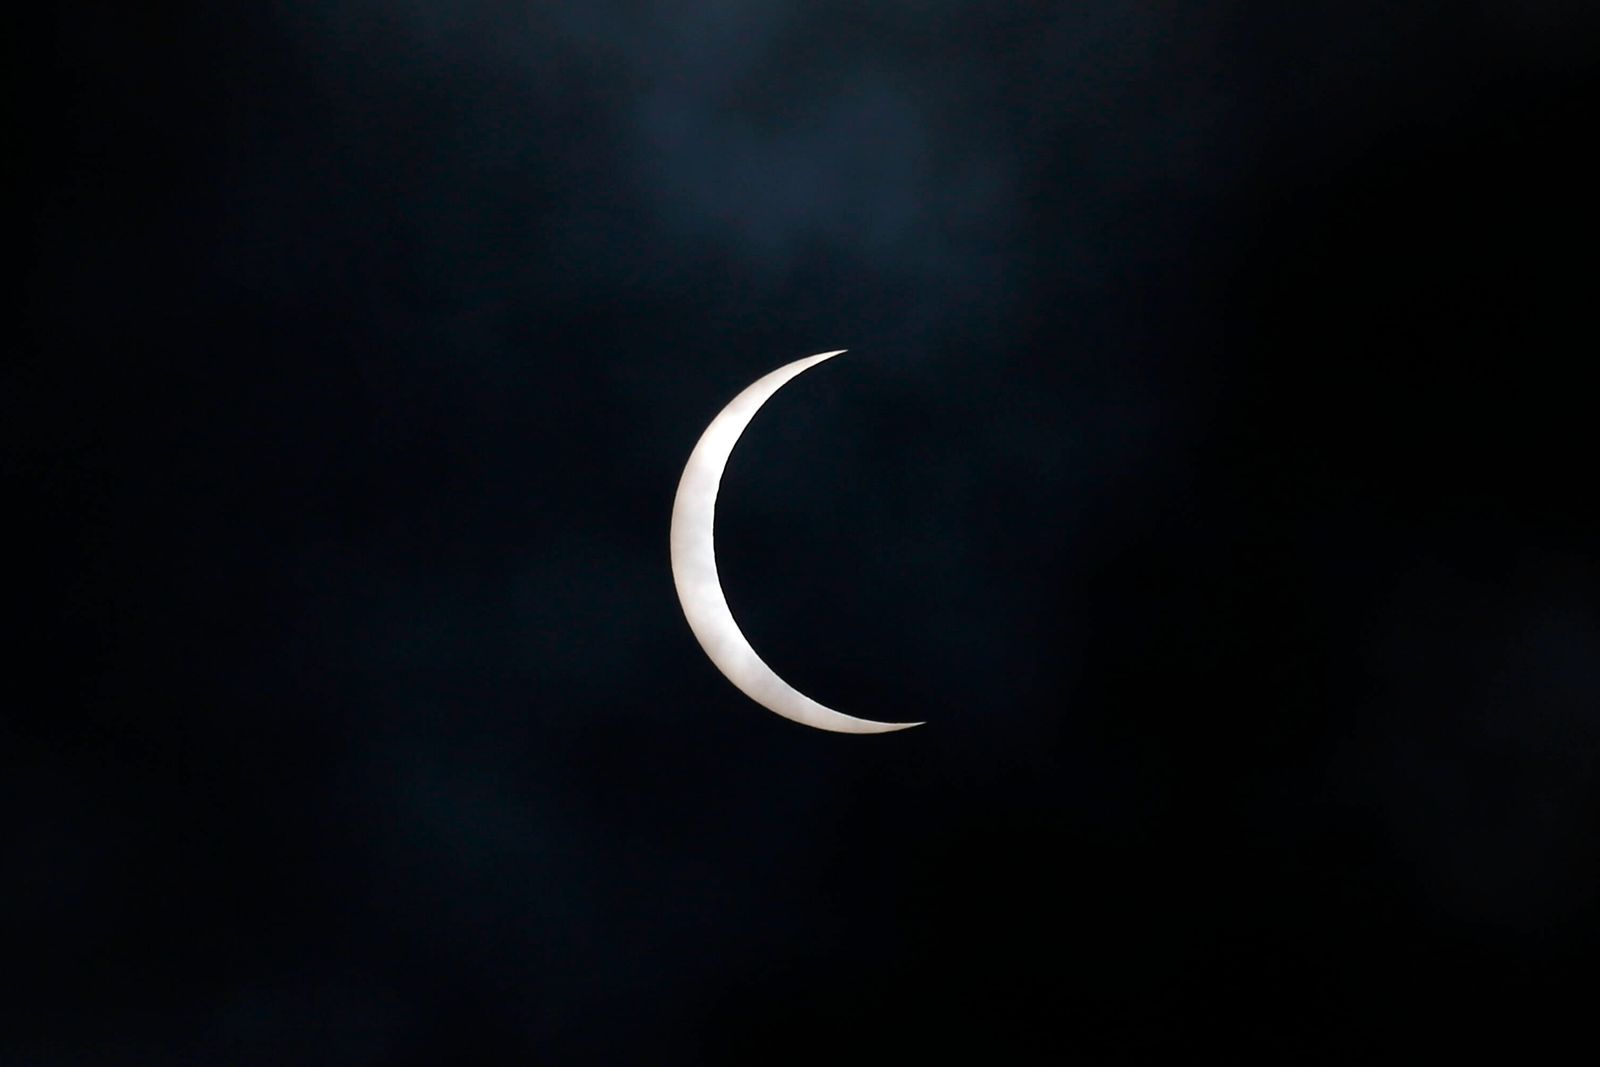 June 21, 2020, Kathmandu, Nepal: The celestial partial solar eclipse appears in the sky pictured from Kathmandu, Nepal